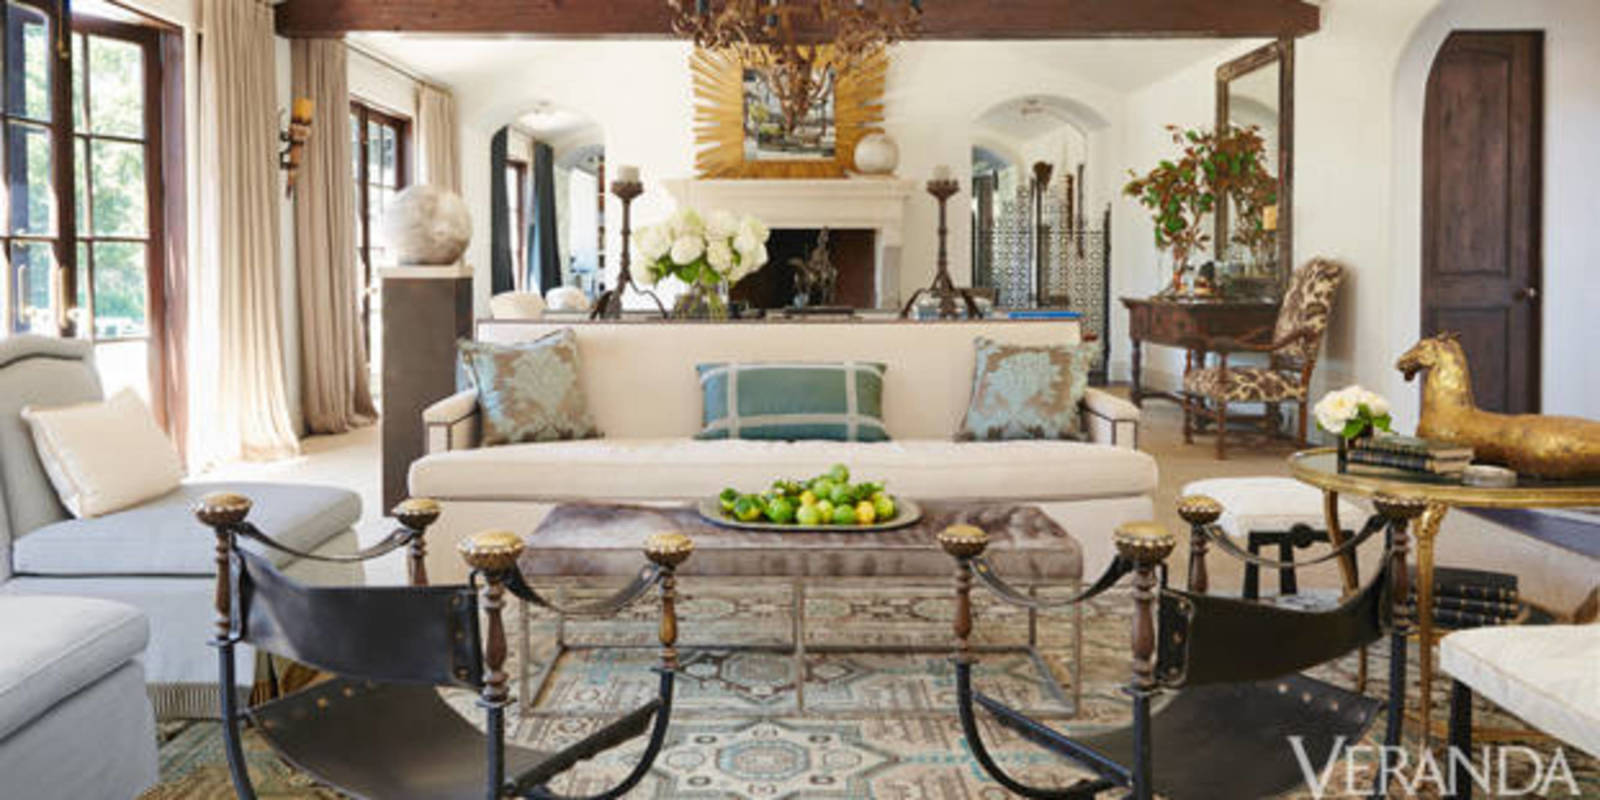 Santa Fe Style Homes Rustic And Refined Los Angeles Ranch Windsor Smith